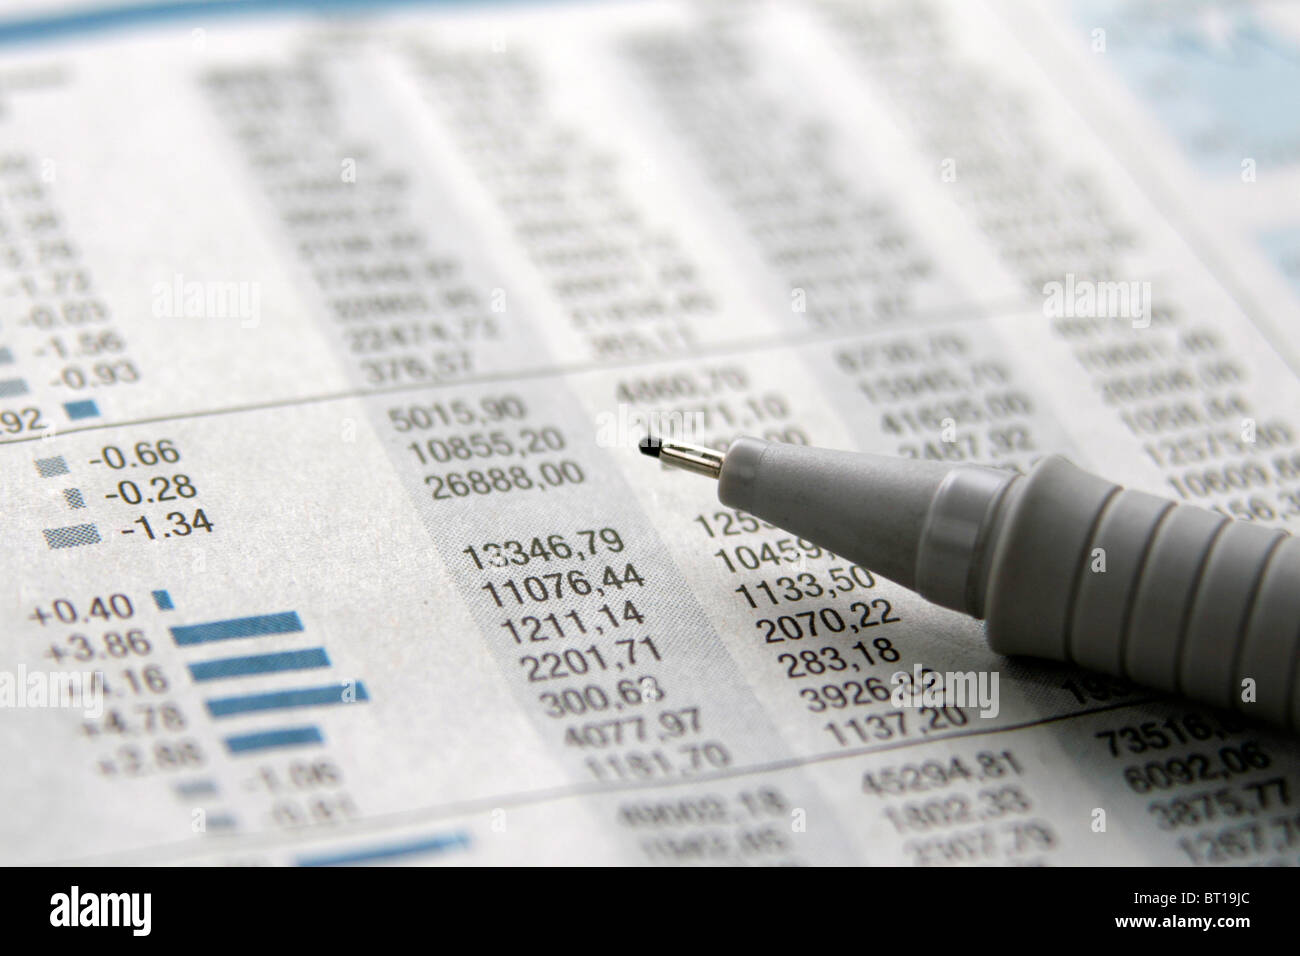 newspaper stock information marked with pencil - Stock Image